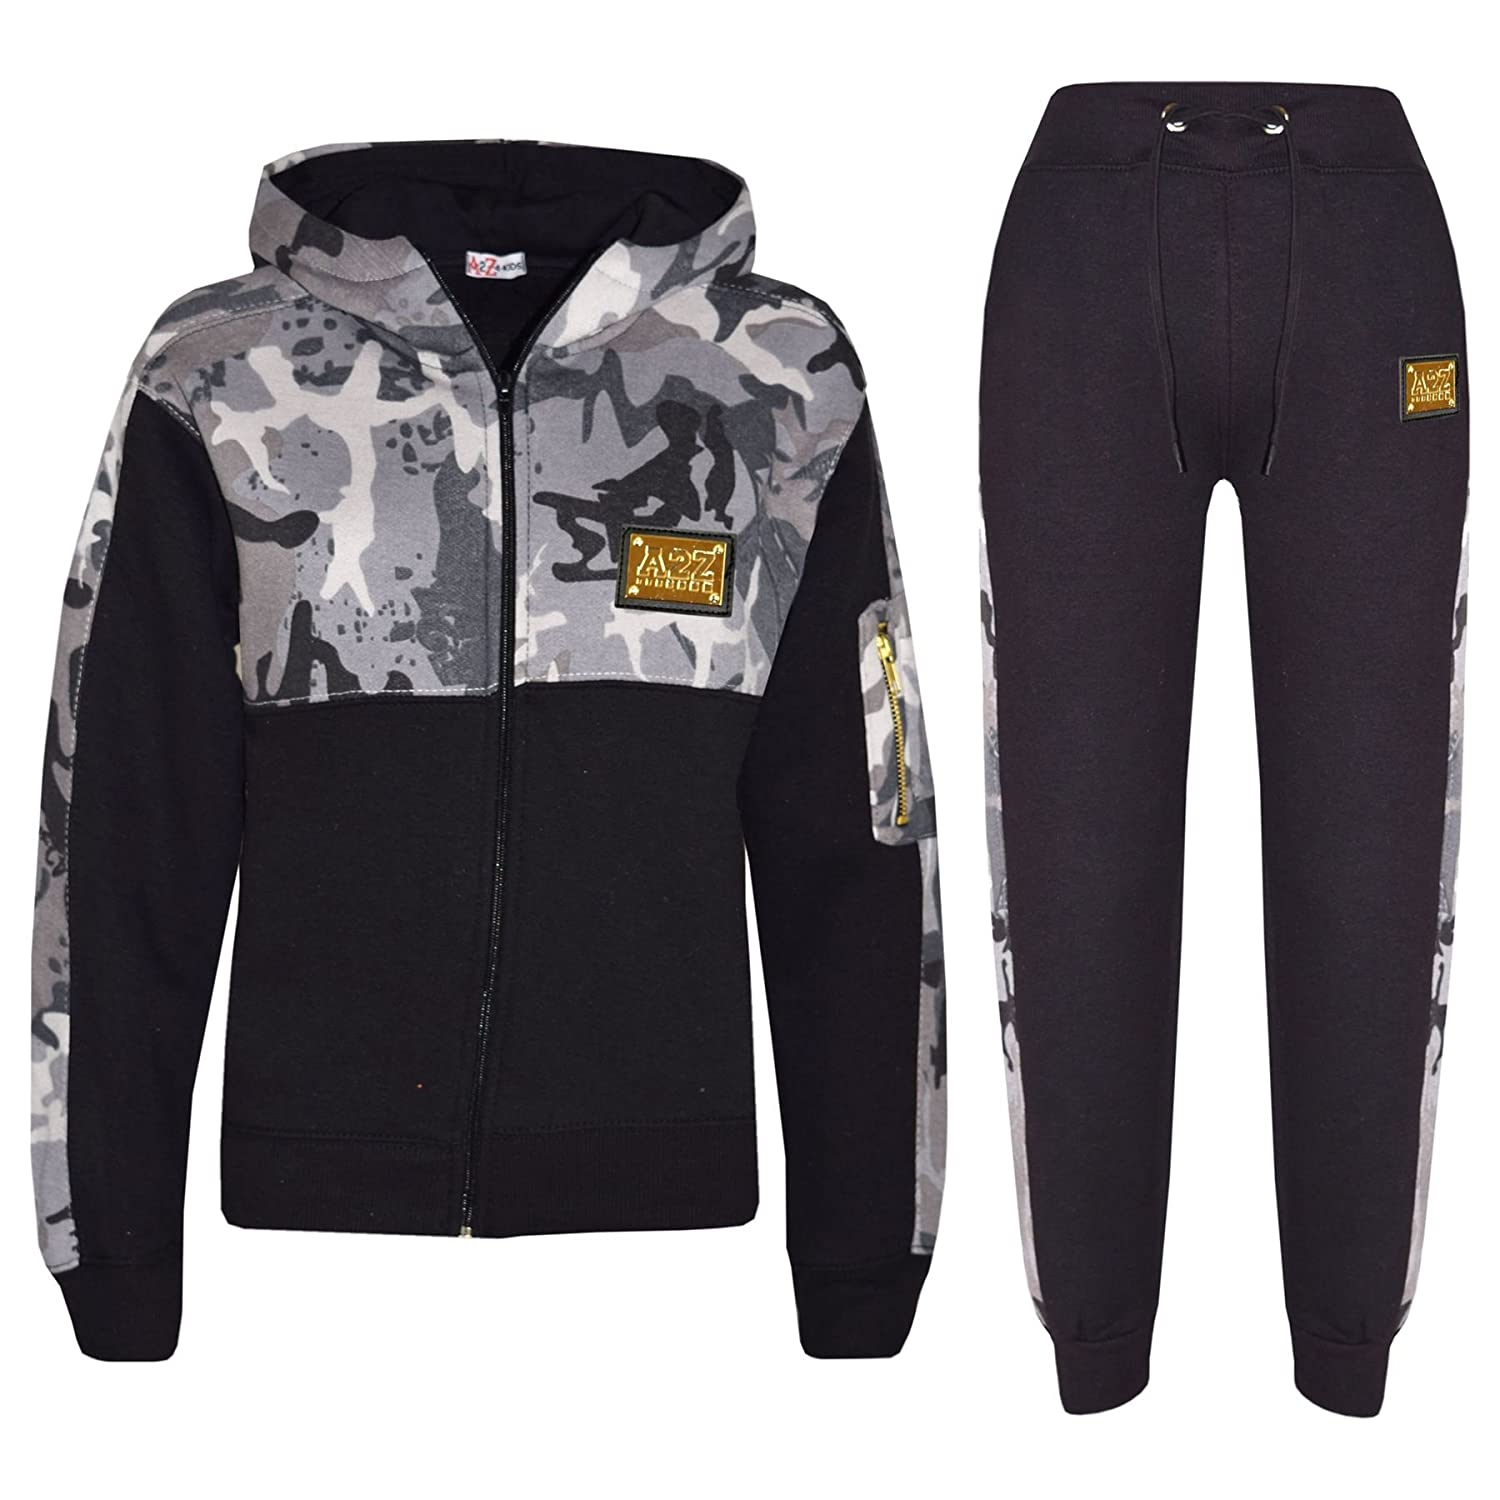 A2Z 4 Kids® Kids Boys Girls Tracksuit Designer's A2Z Badged Camouflage Charcoal Contrast Panel Hooded Zipped Top Botom Jogging Suit Age 5 6 7 8 9 10 11 12 13 Years